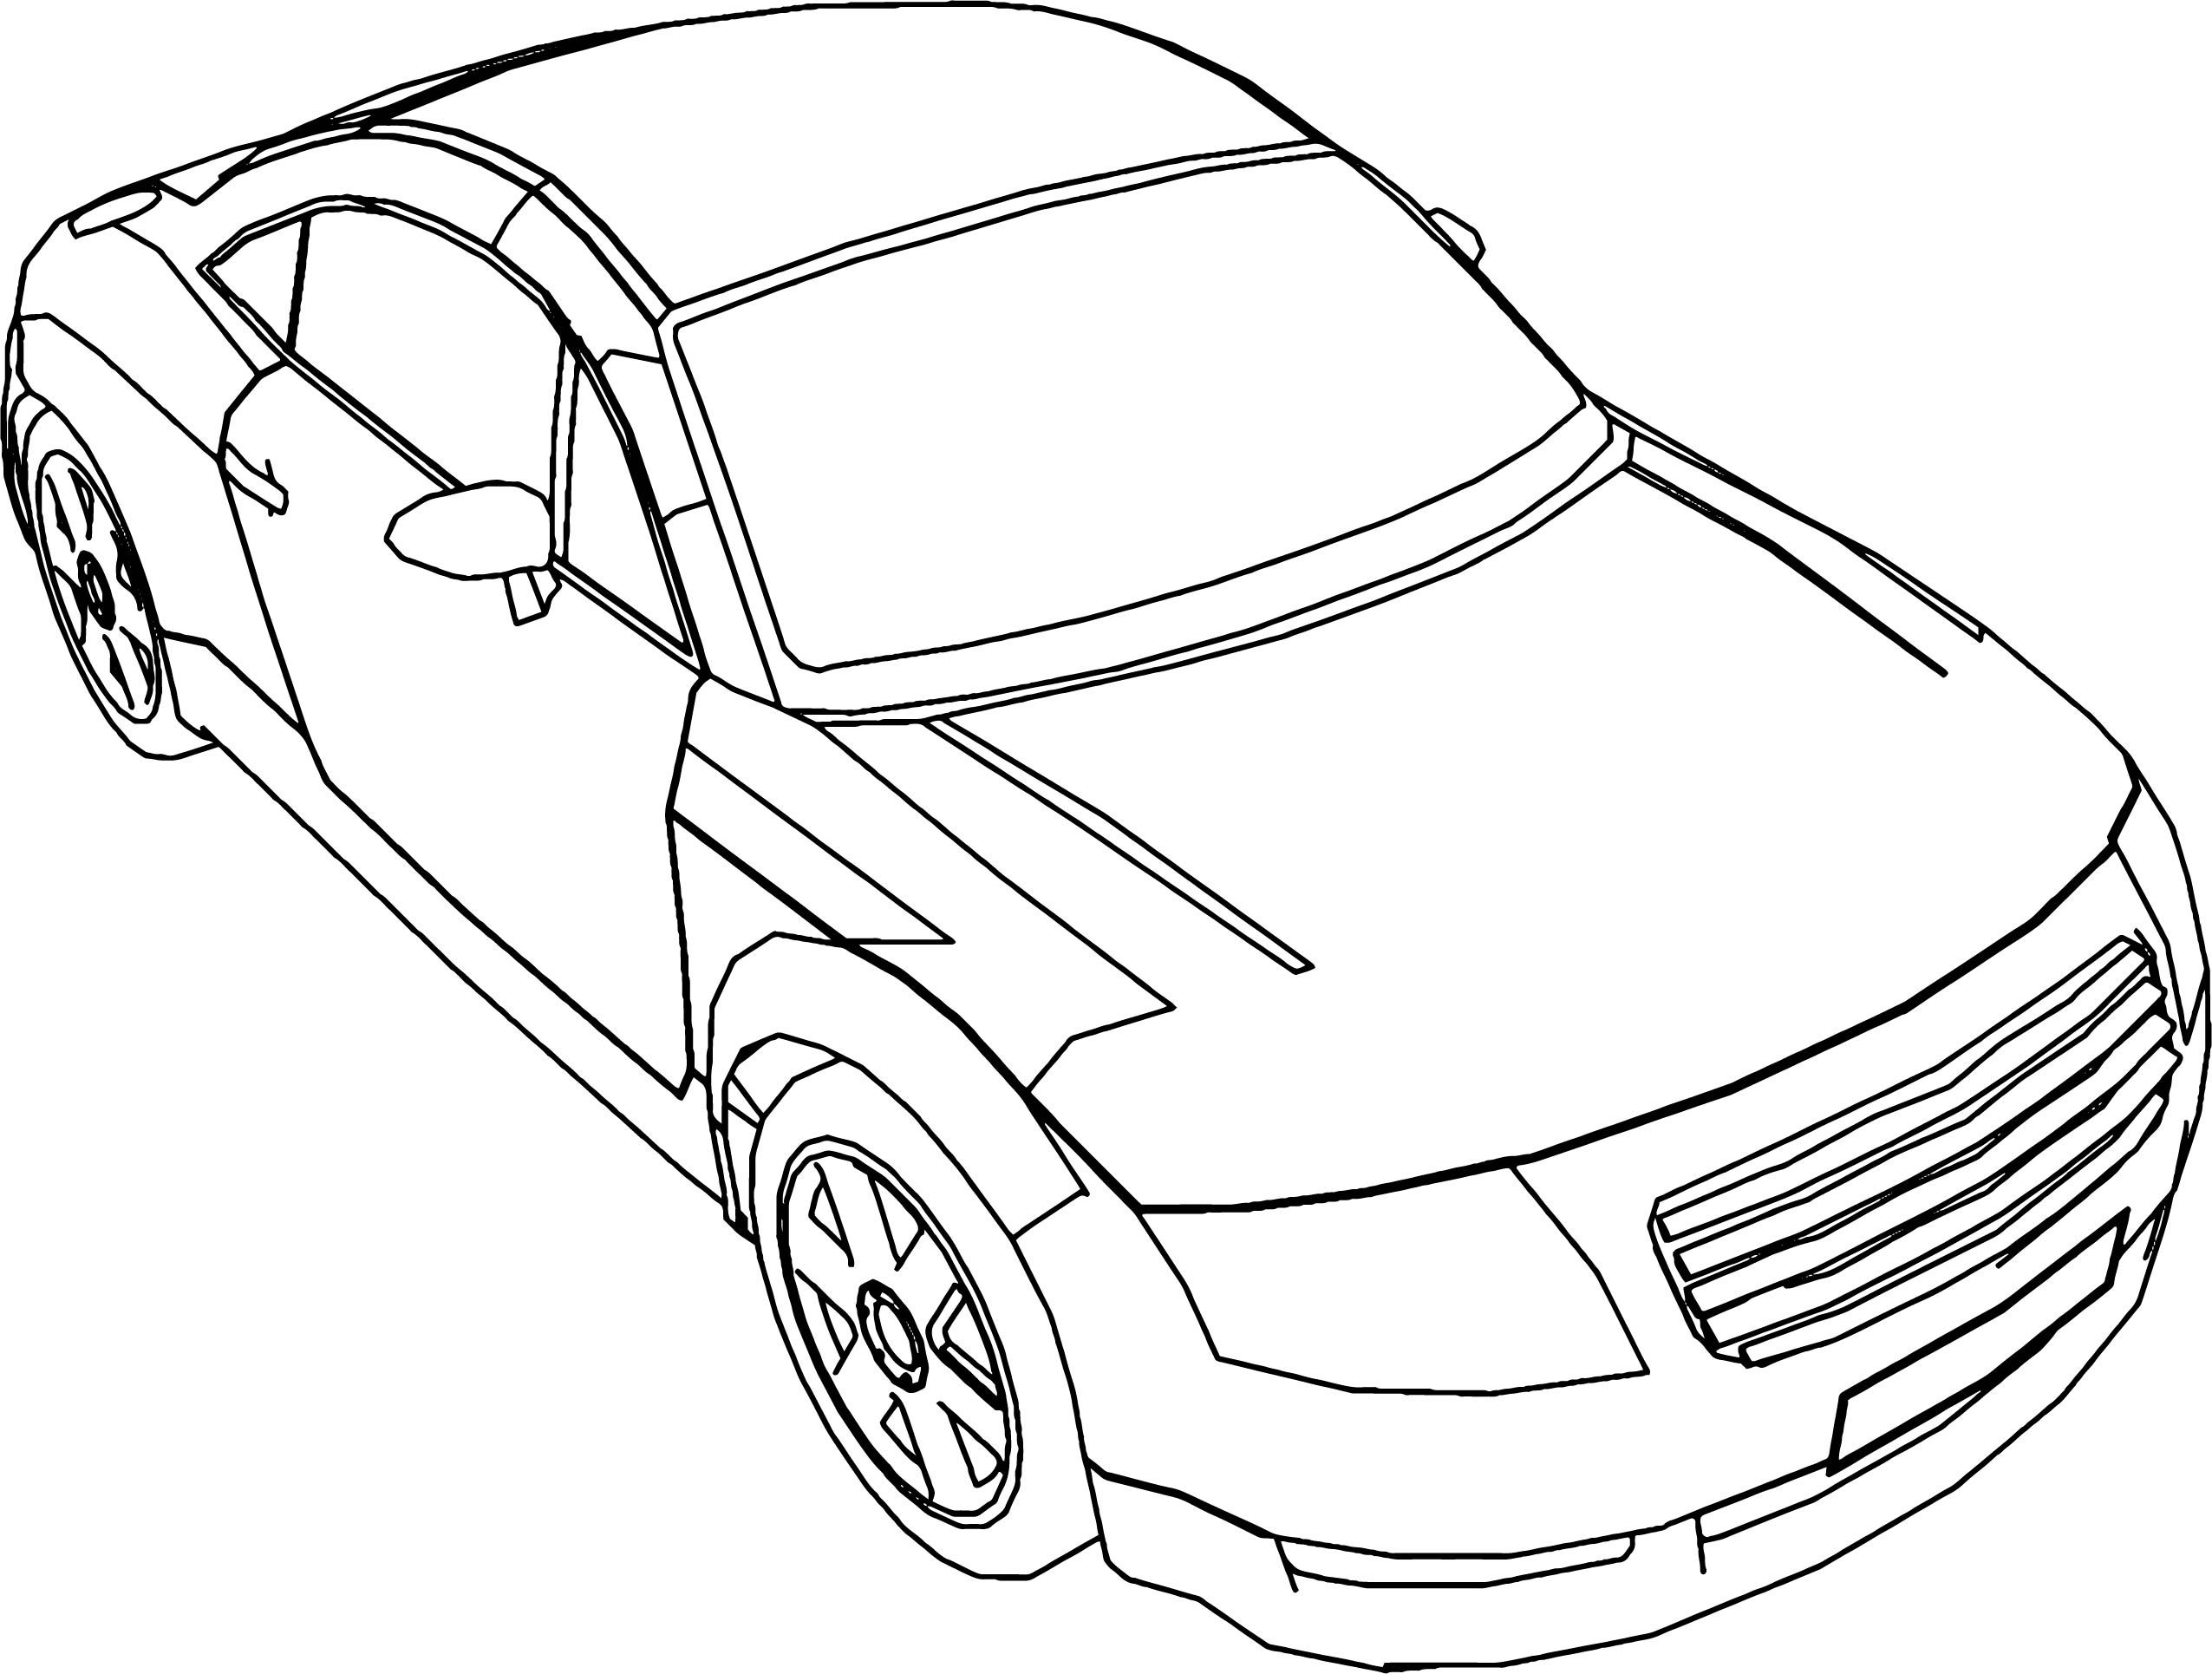 audi coloring sheet audi coloring sheet audi sheet coloring